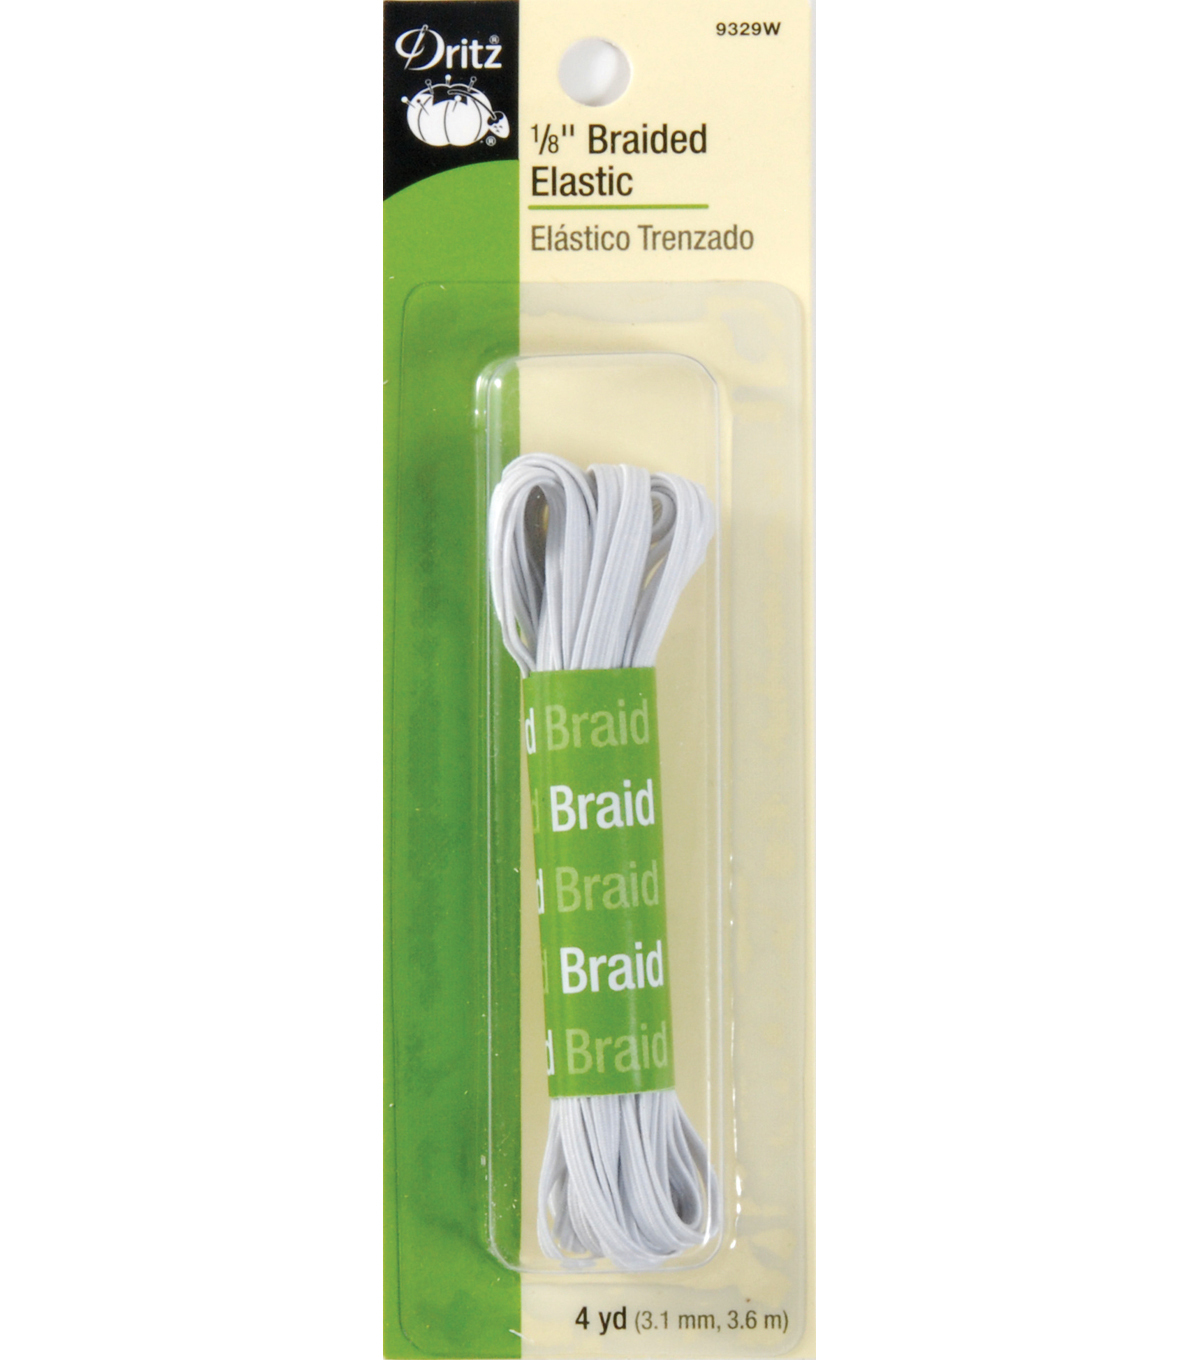 Dritz Braided Elastic 0.13\u0027\u0027 Wide x 4Yds